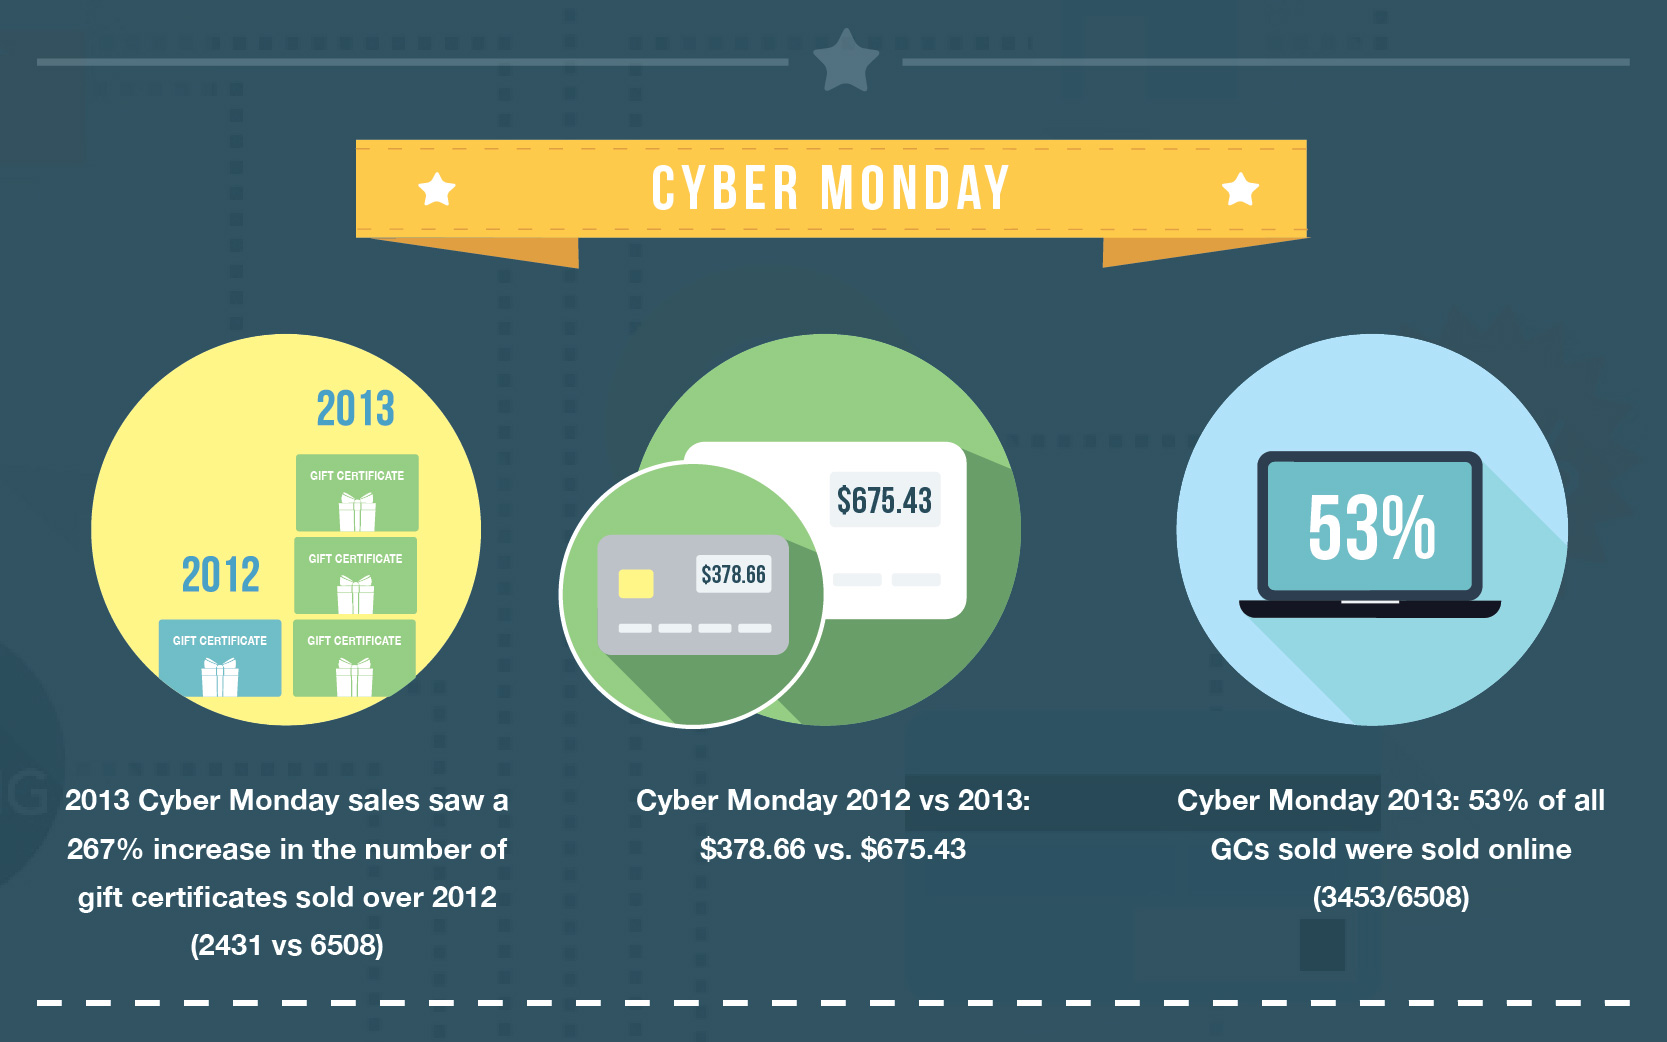 Cyber Monday Holiday Sales Statistics 2013